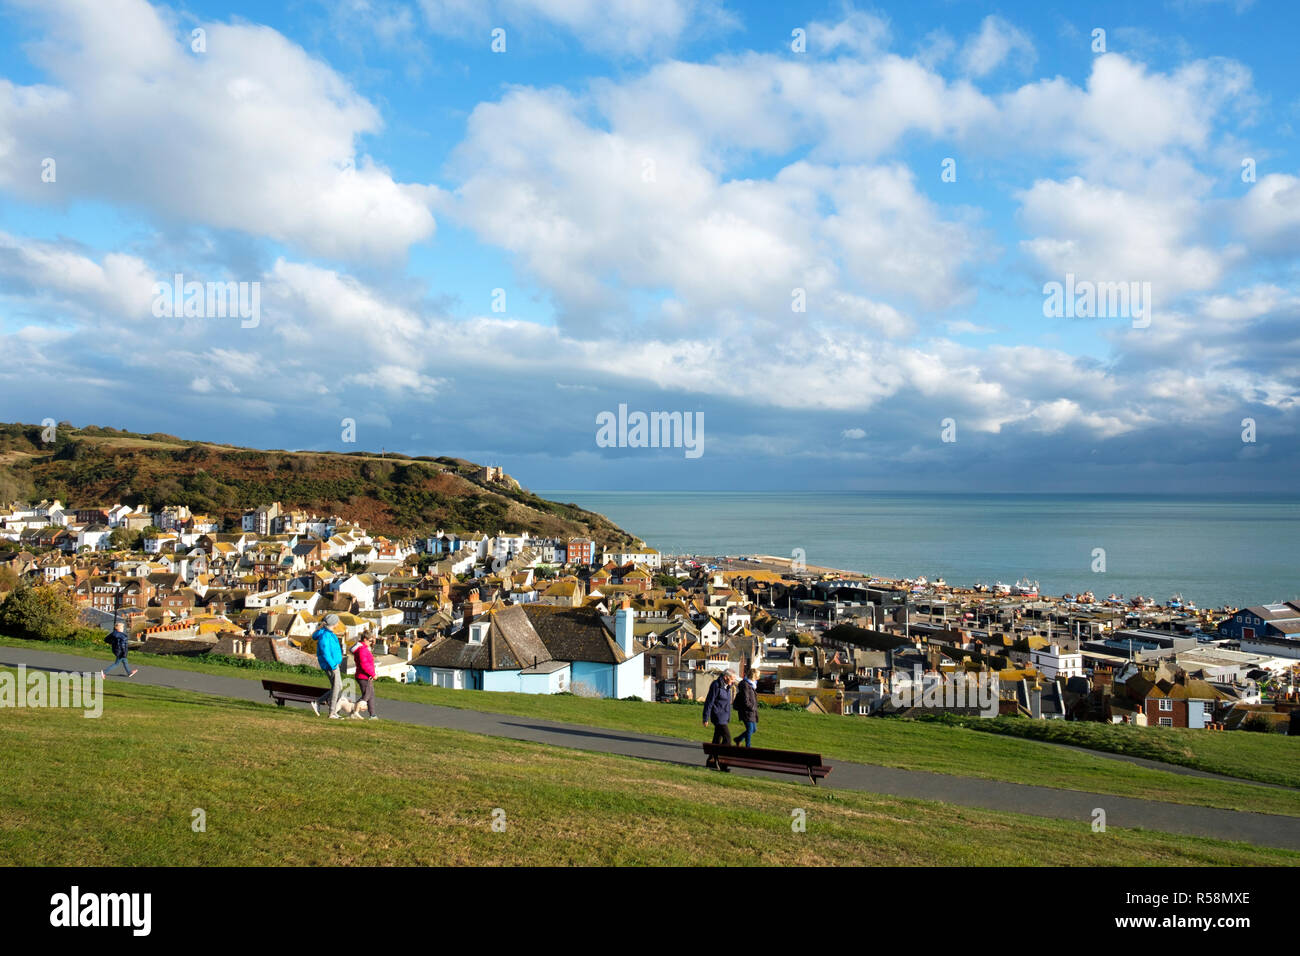 Walkers strolling on West Hill Hastings, in the late October afternoon sunshine at the start of wintertime, East Sussex, UK - Stock Image